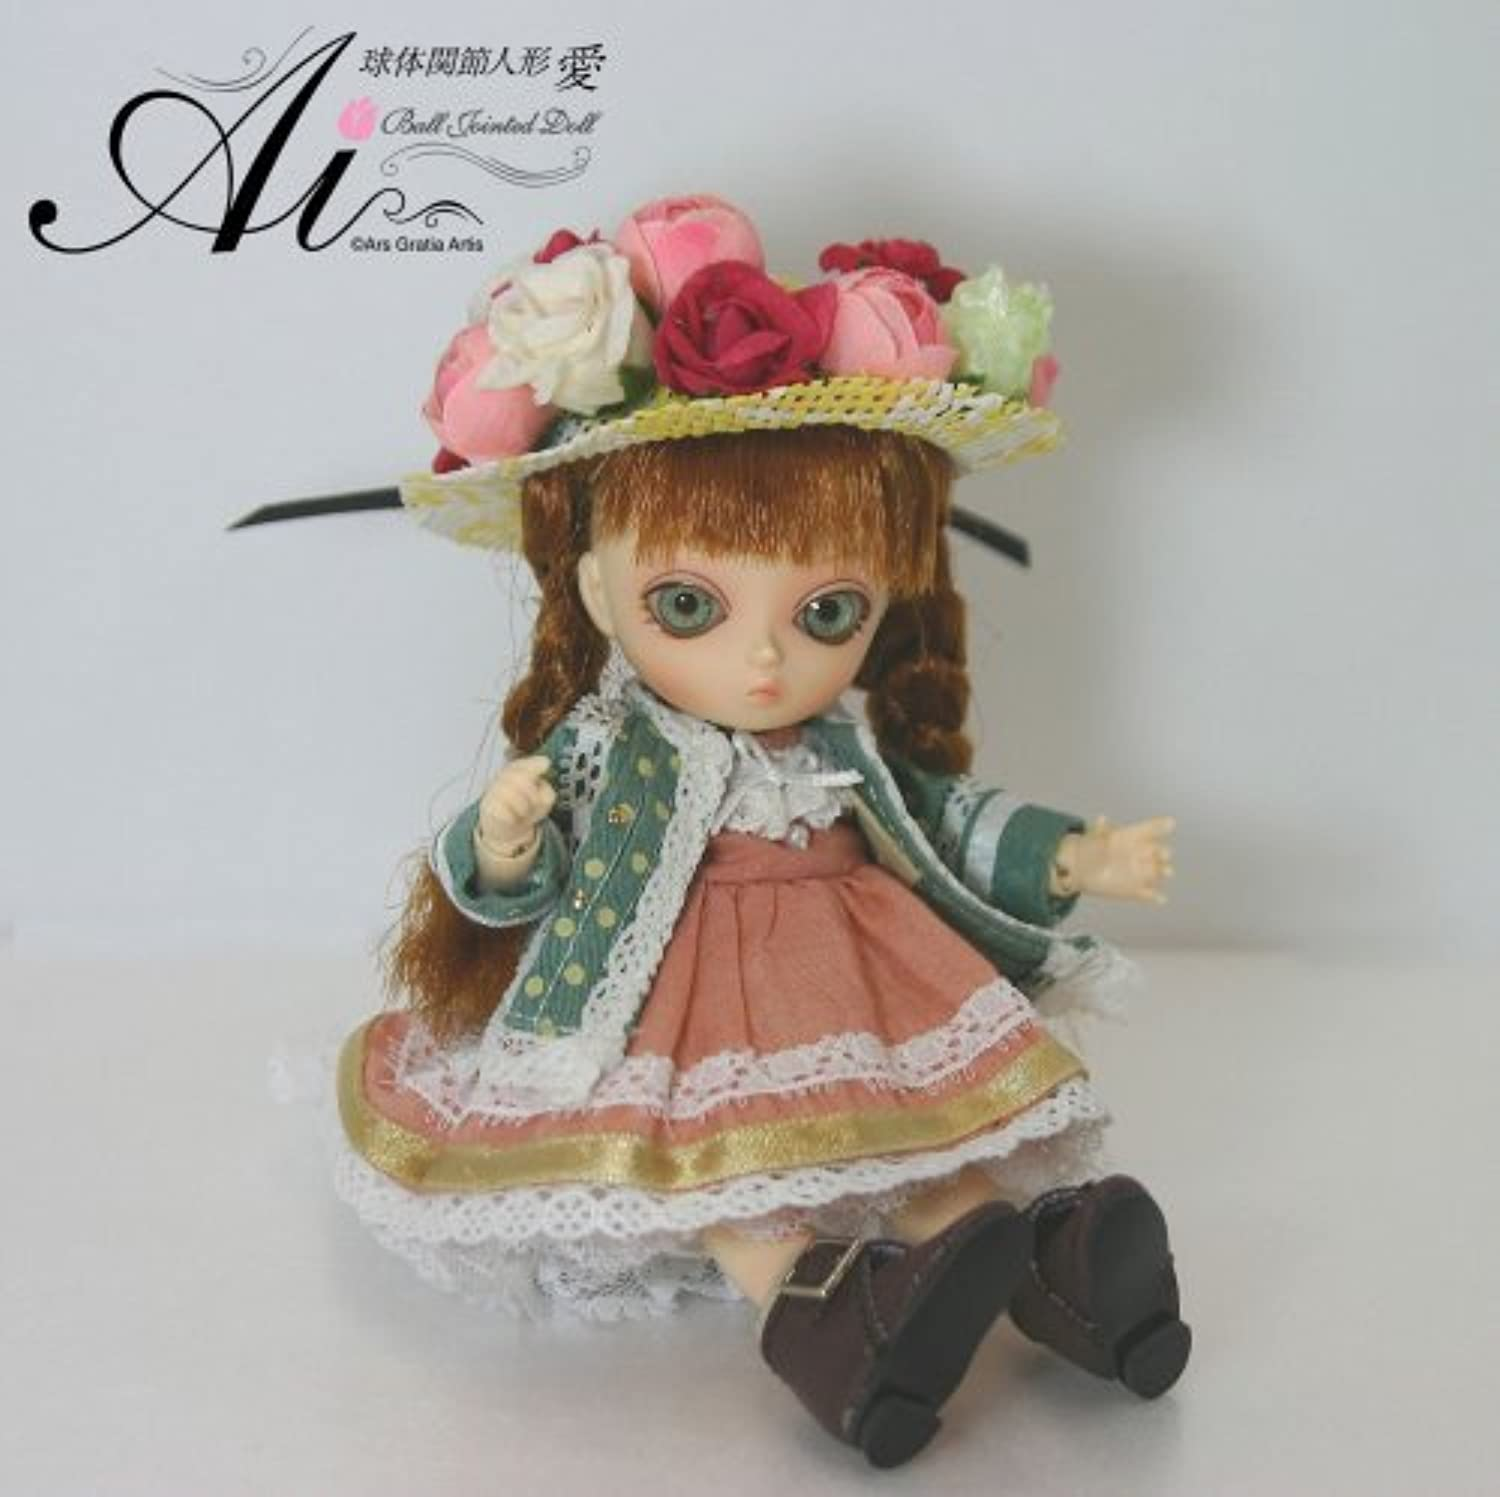 Ball-jointed Doll Ai - Lawn Daisy by JUN Planning